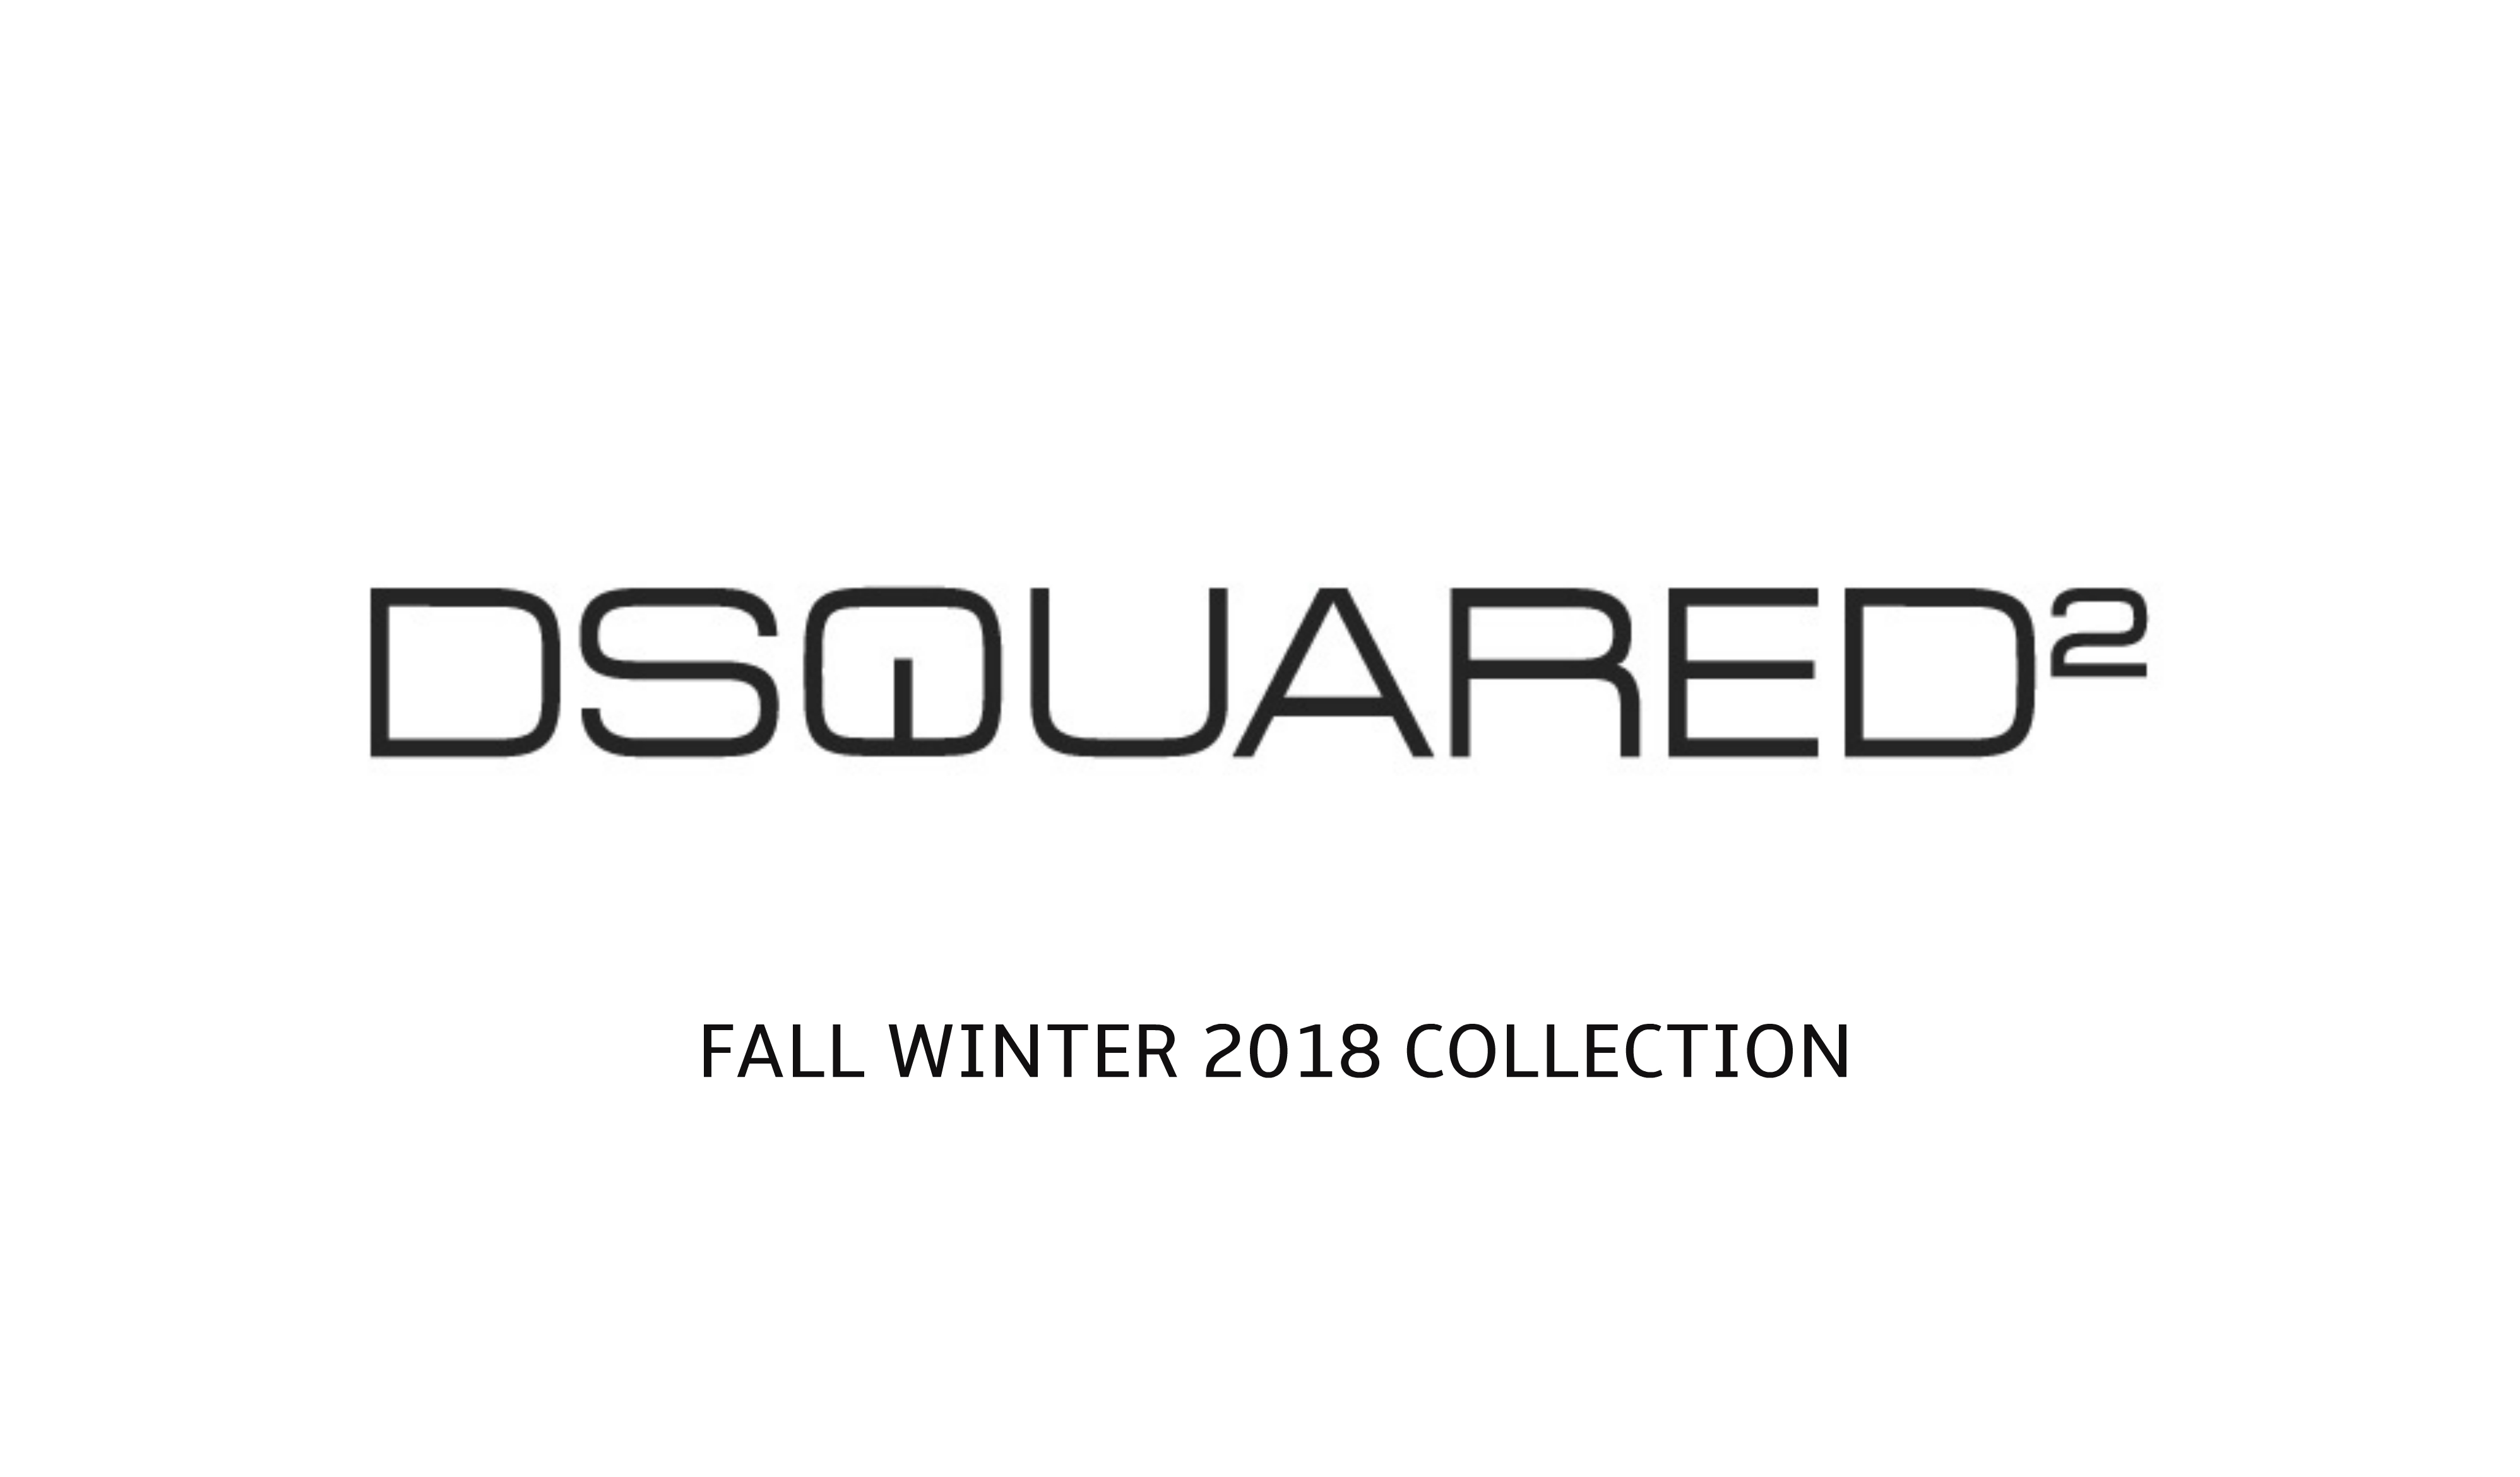 Dsquared2 Fall Winter 2018 Collection